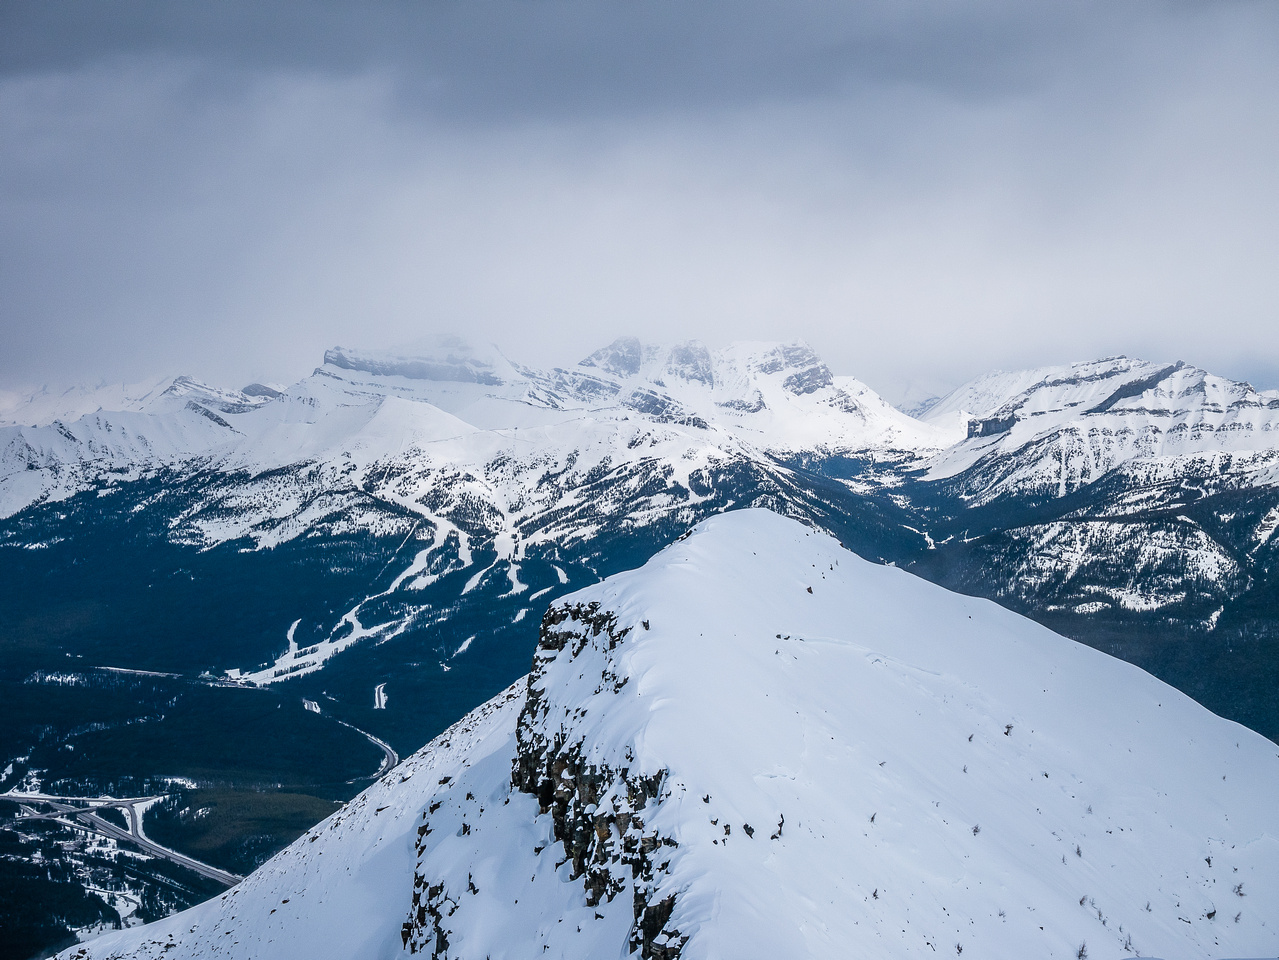 Looking over a sub summit towards the Lake Louise ski resort.